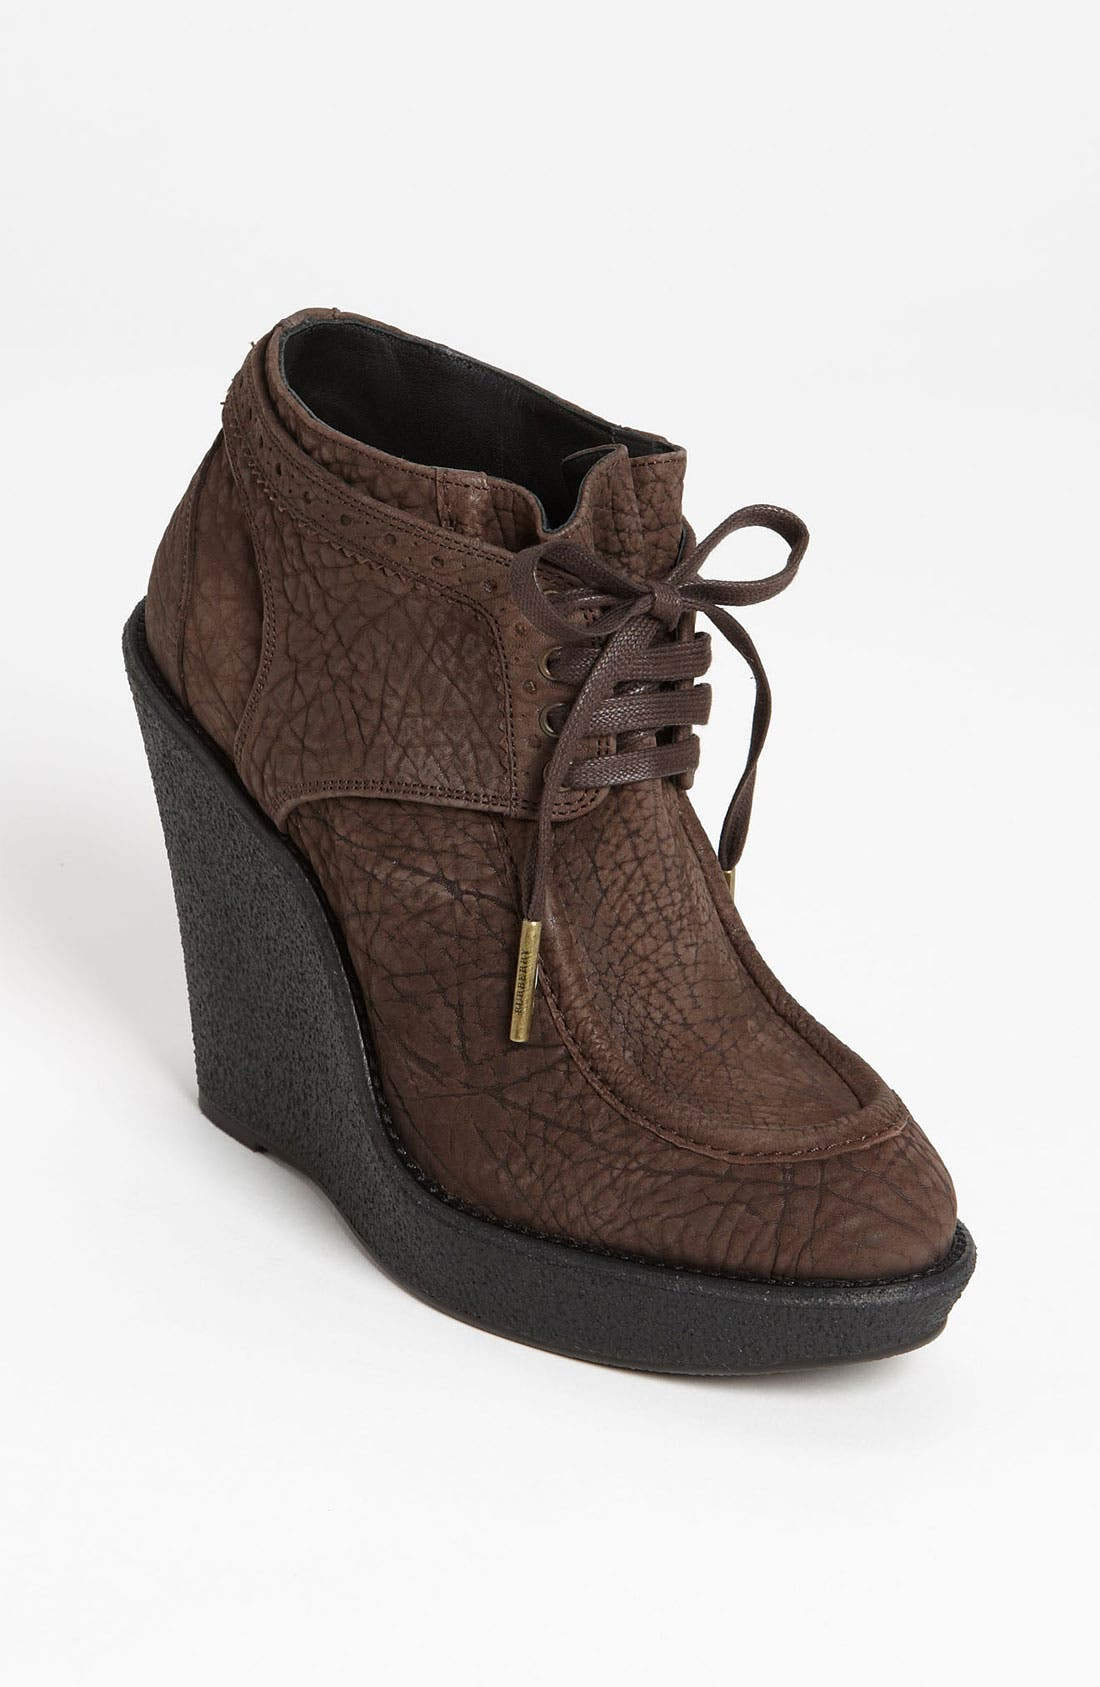 Alternate Image 1 Selected - Burberry 'Blandford' Bootie